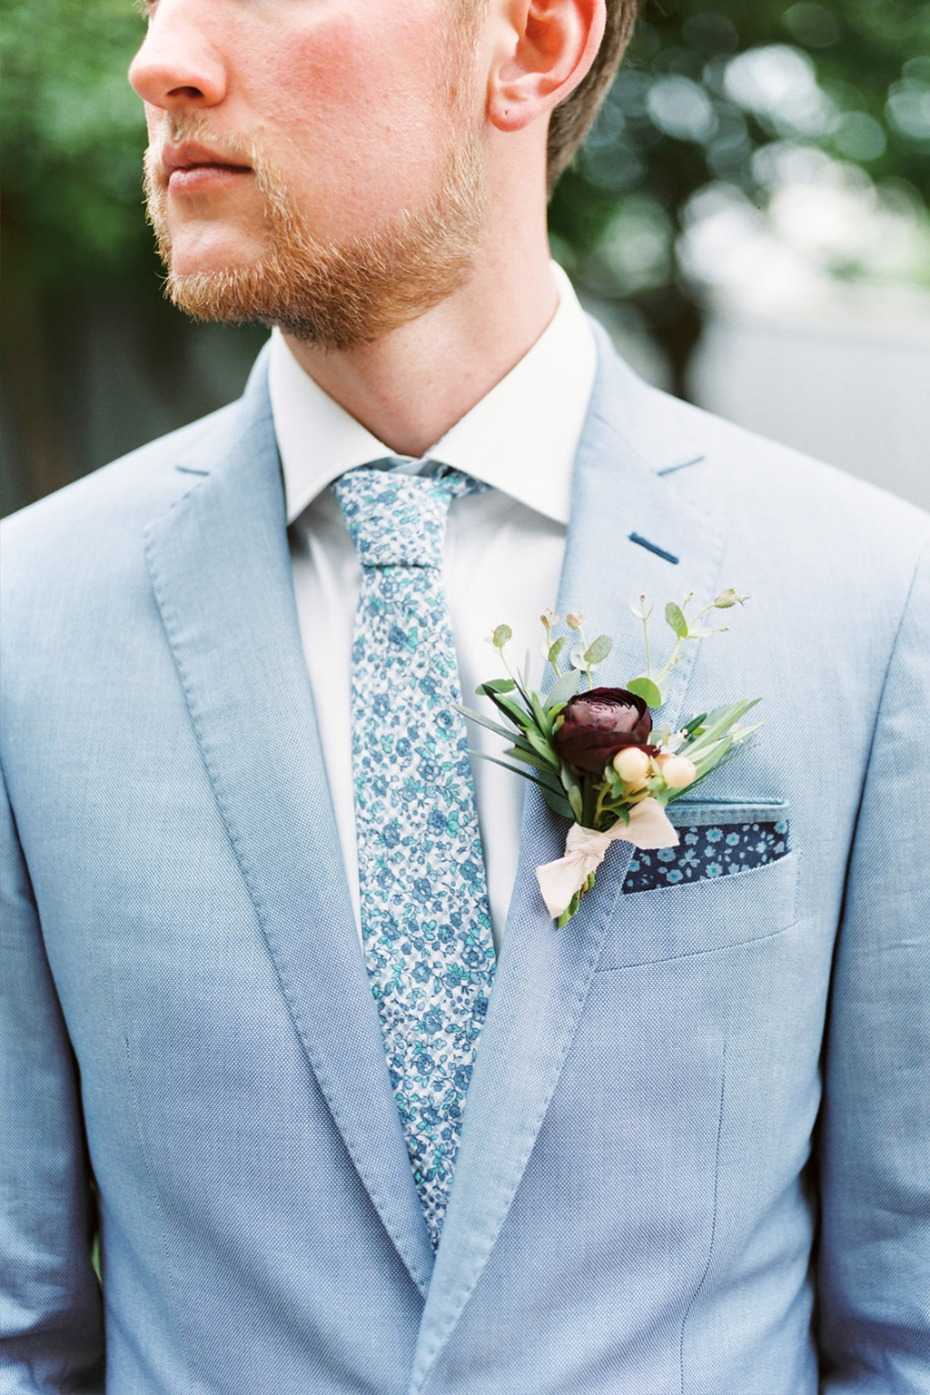 groom in light blue suit and floral tie and pocket square